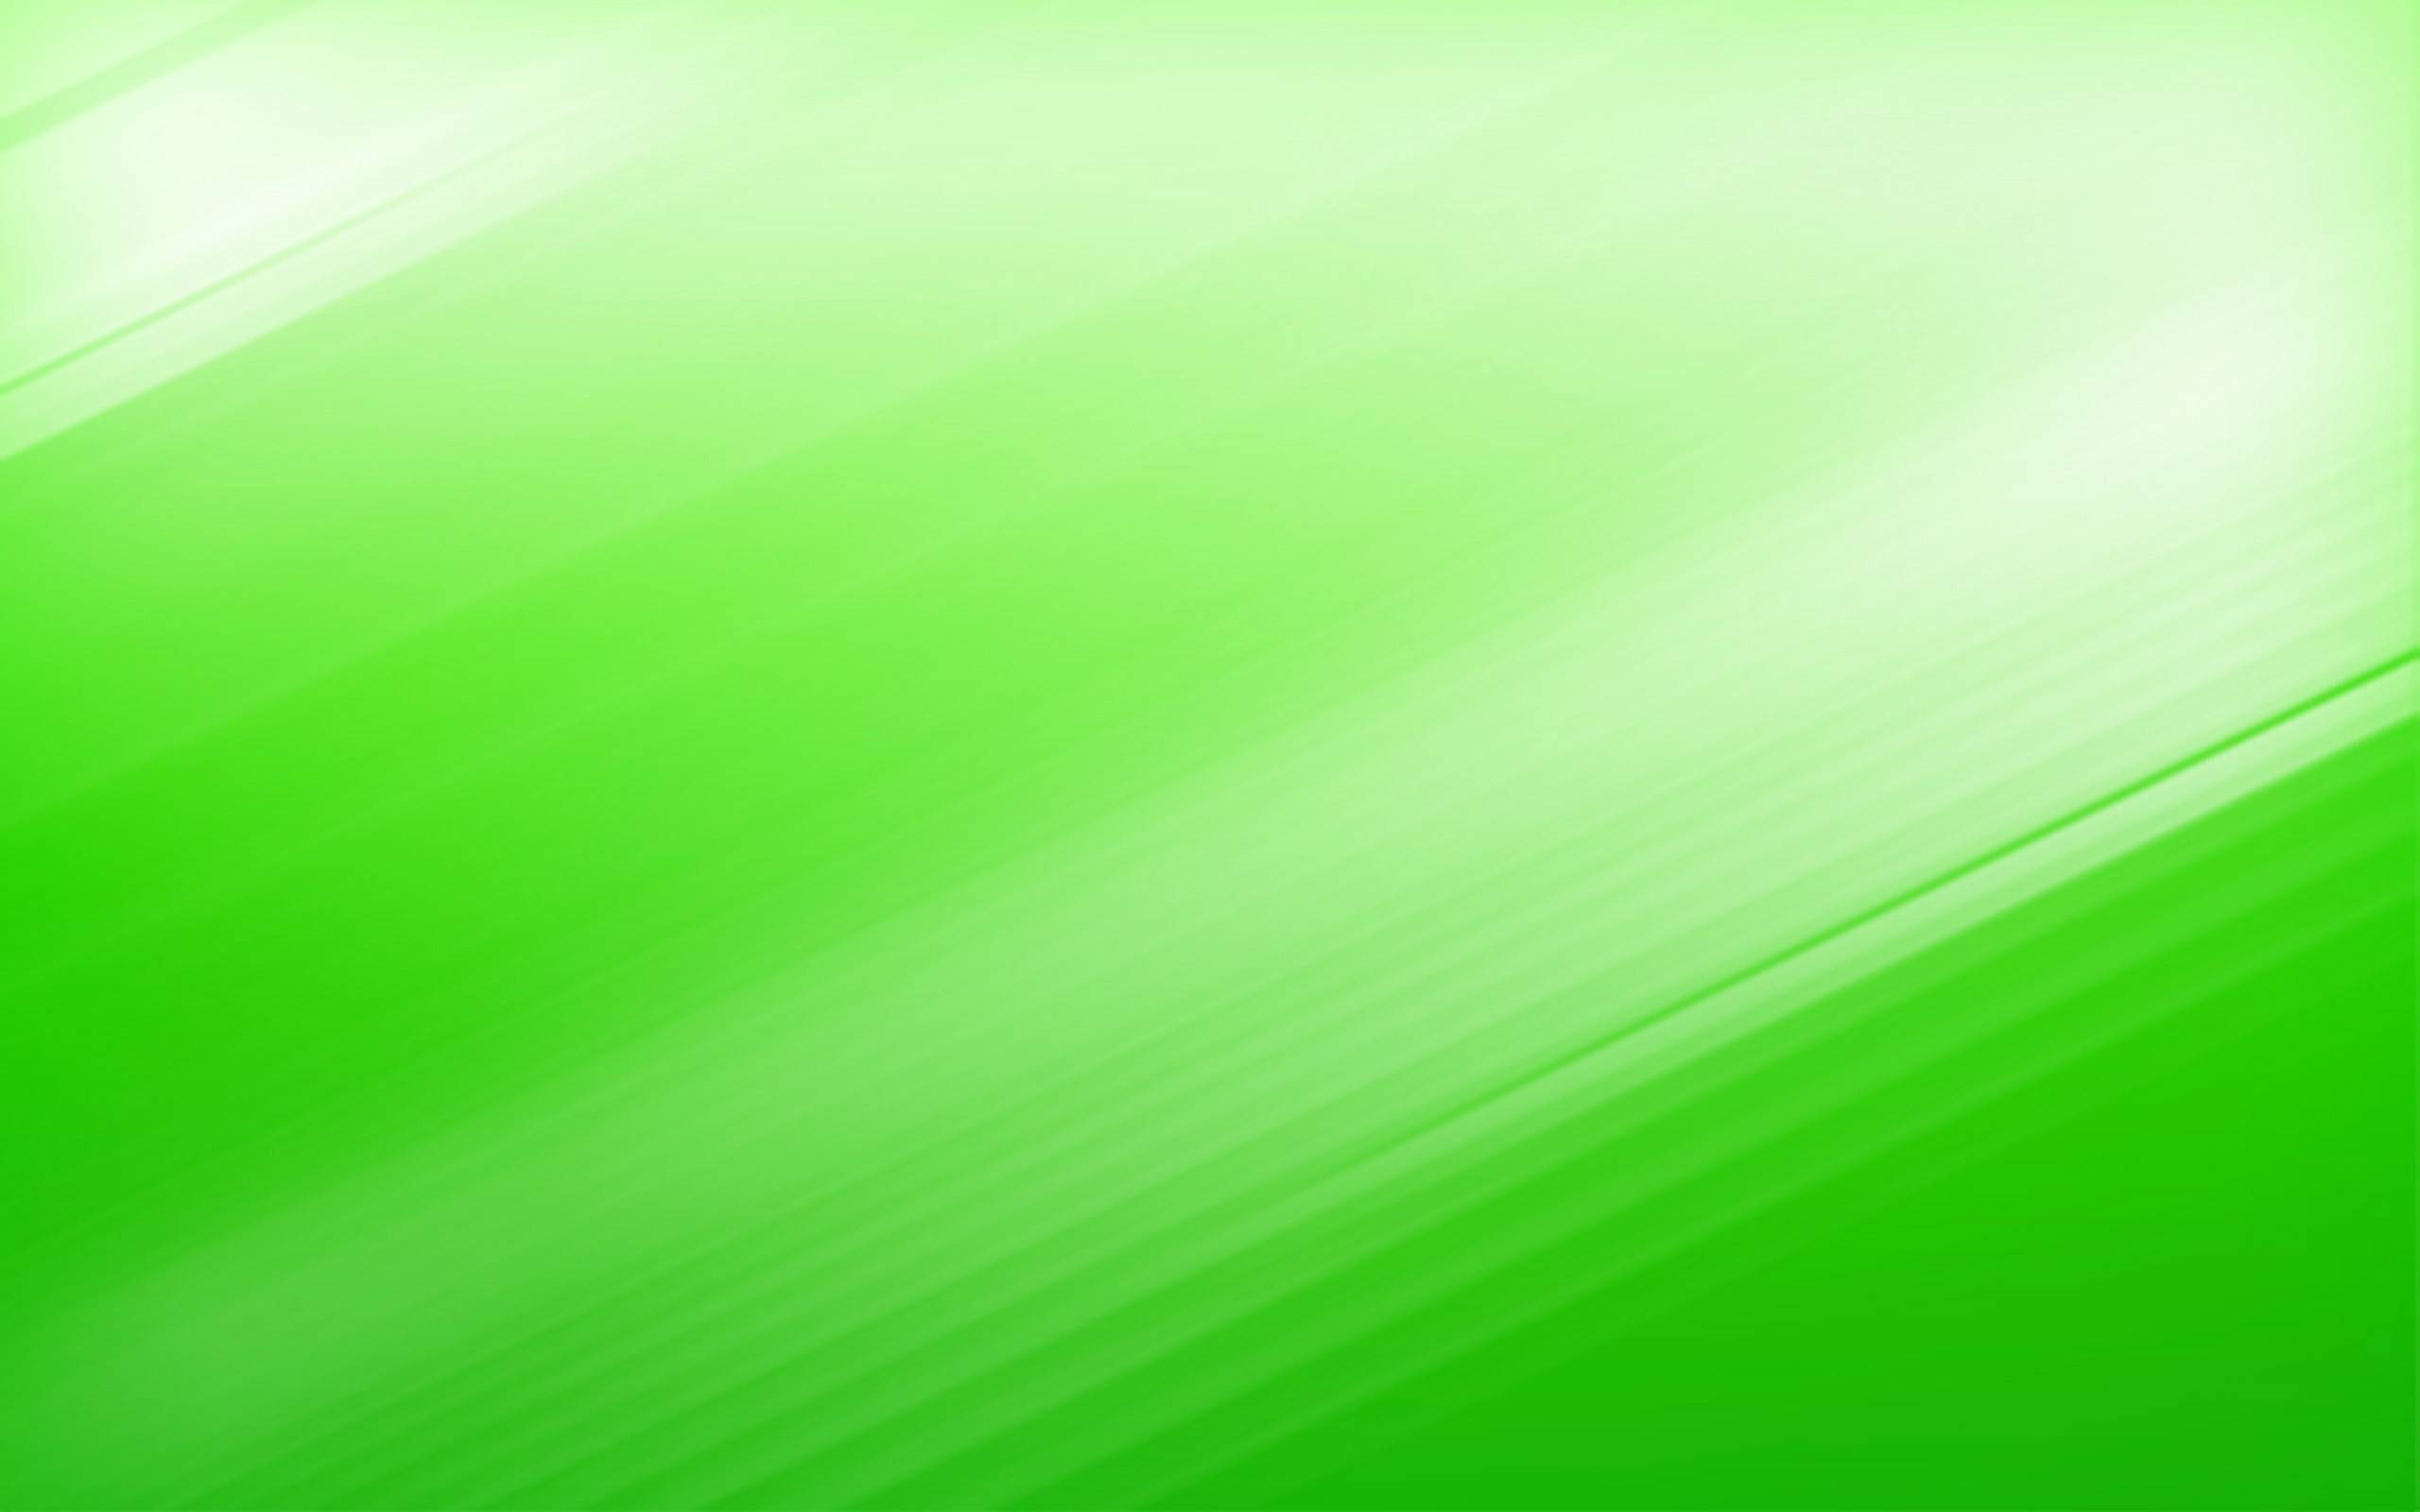 green and white backgrounds - photo #27